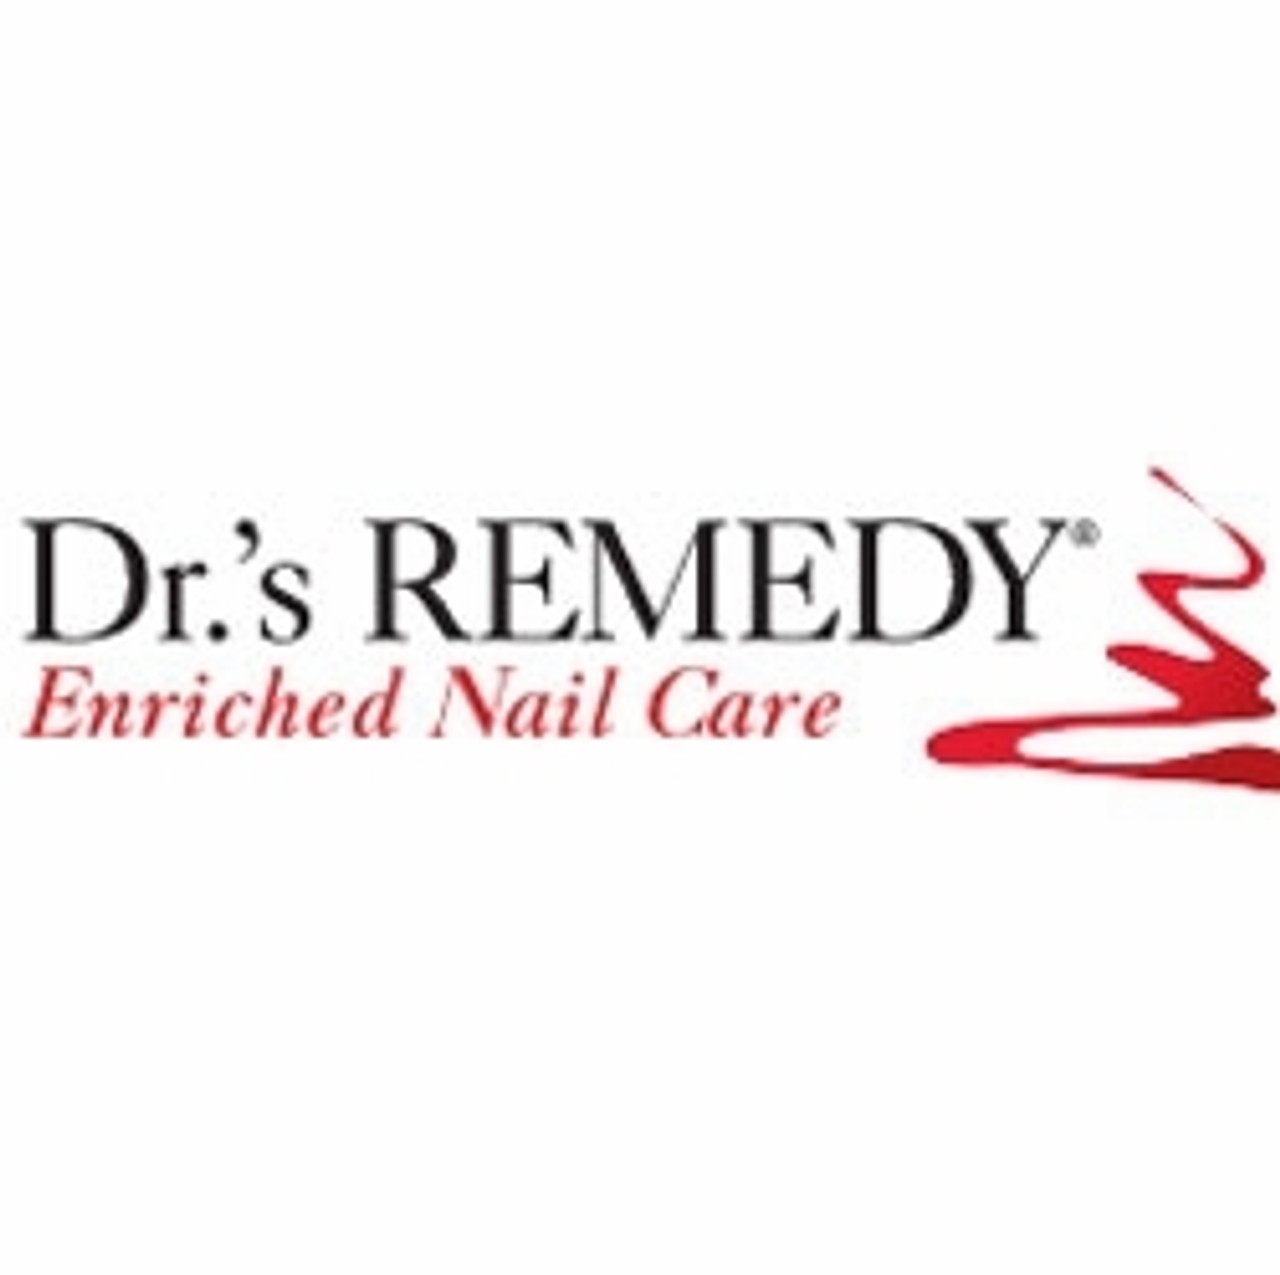 Dr's Remedy Foot Care